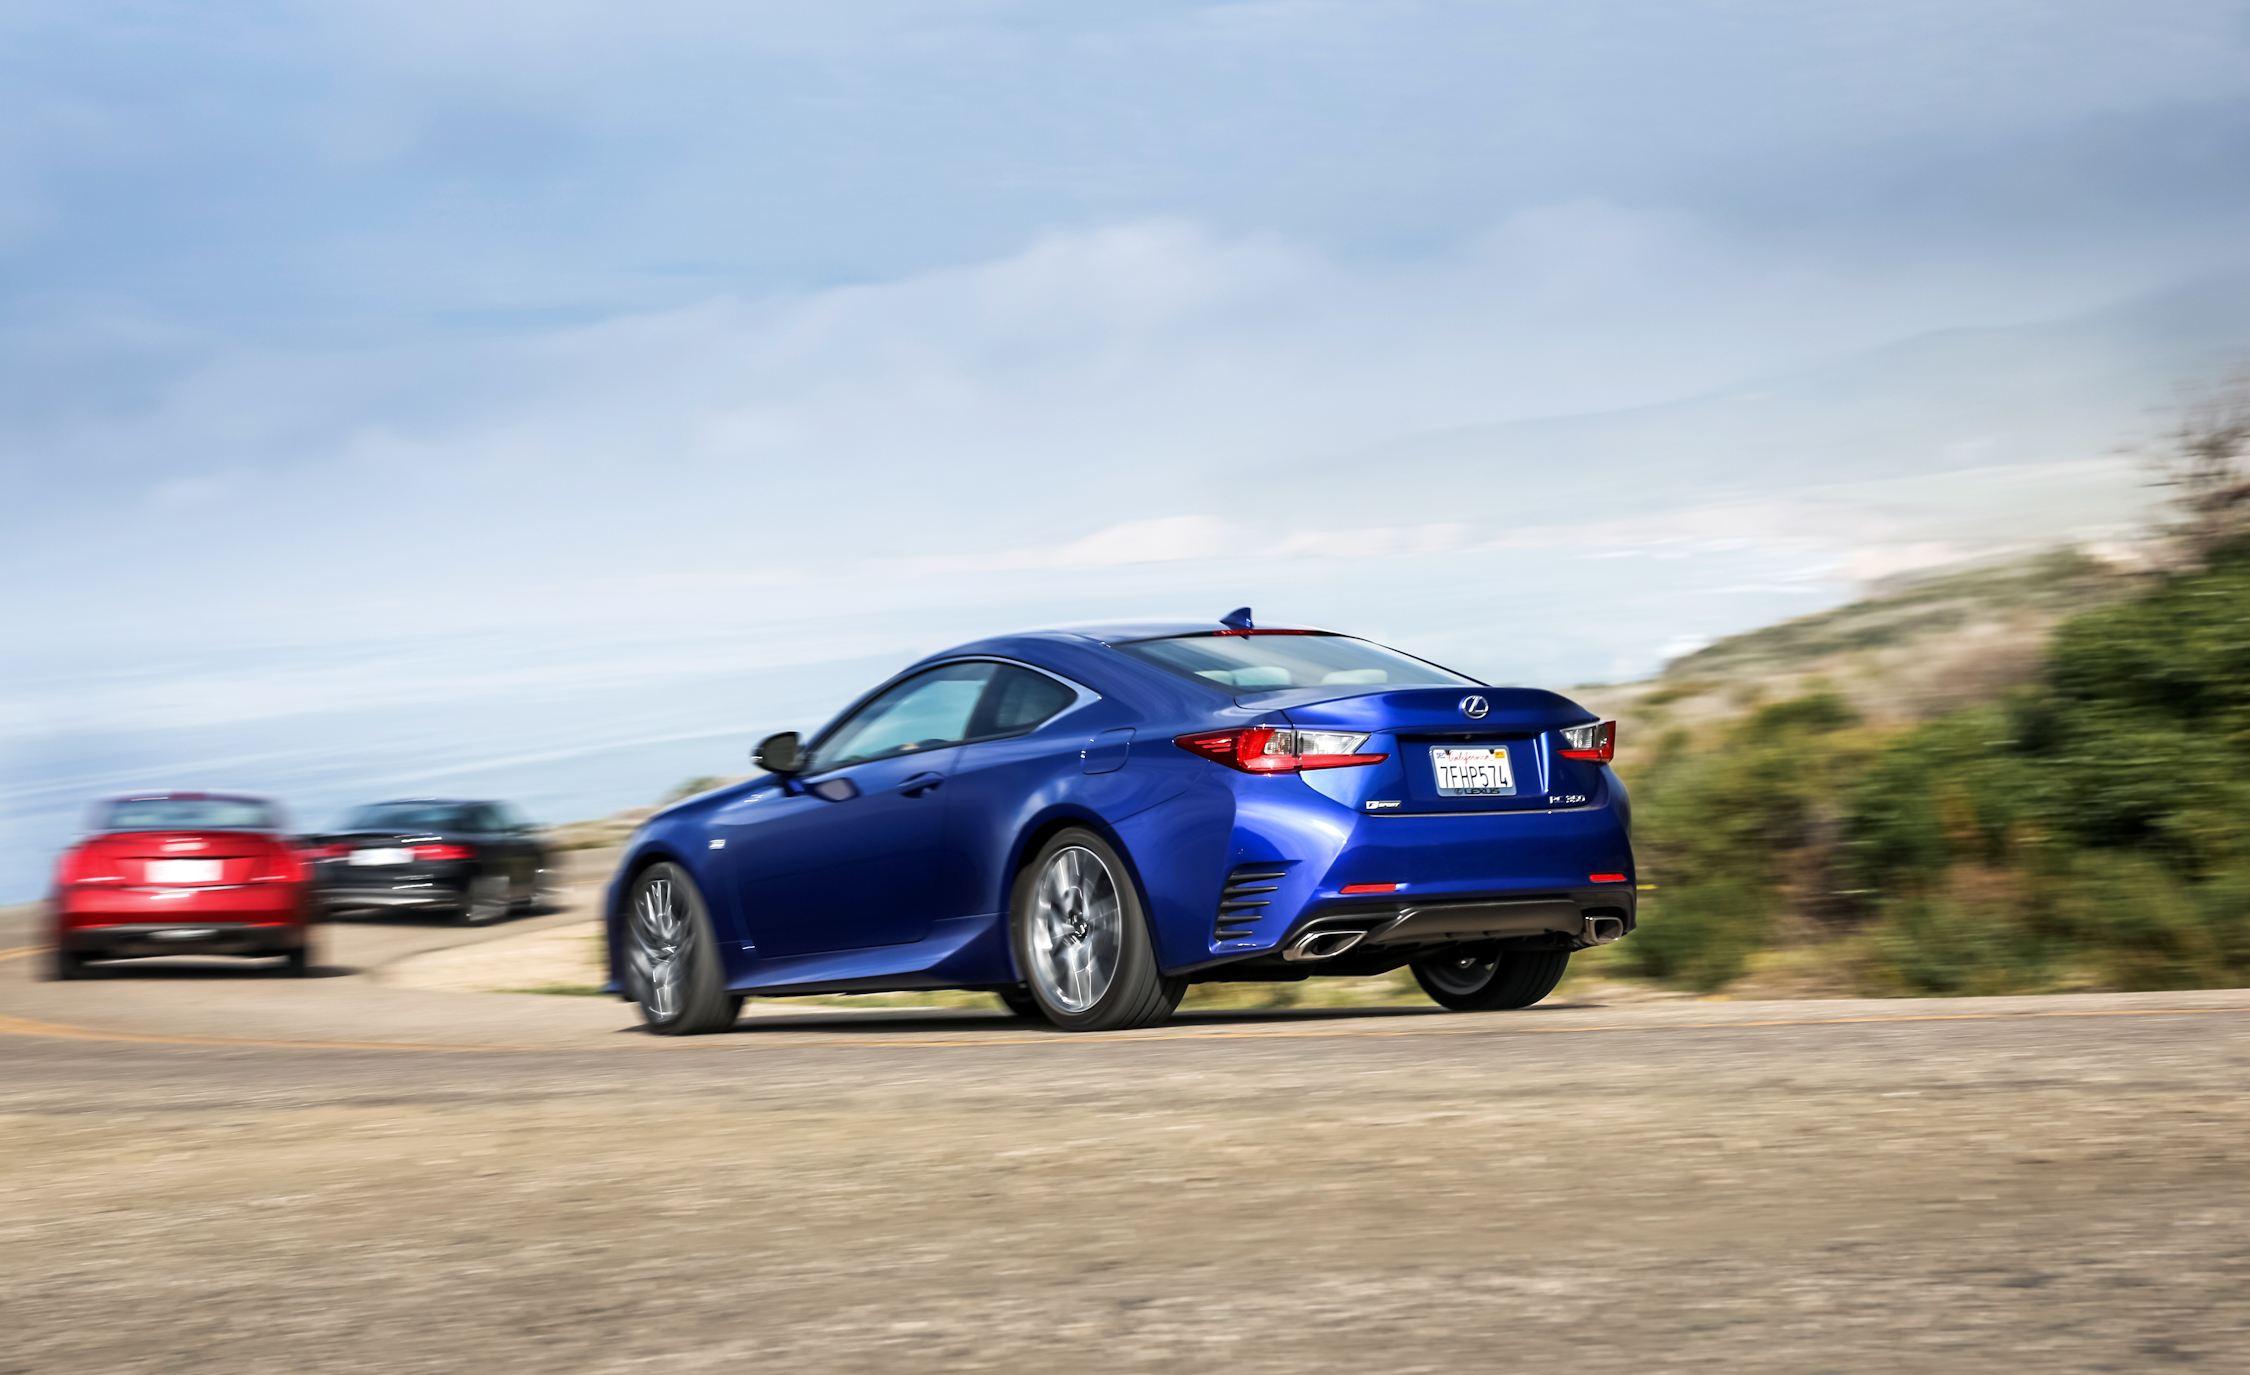 Lexus RC350 F Sport Rear Side Exterior